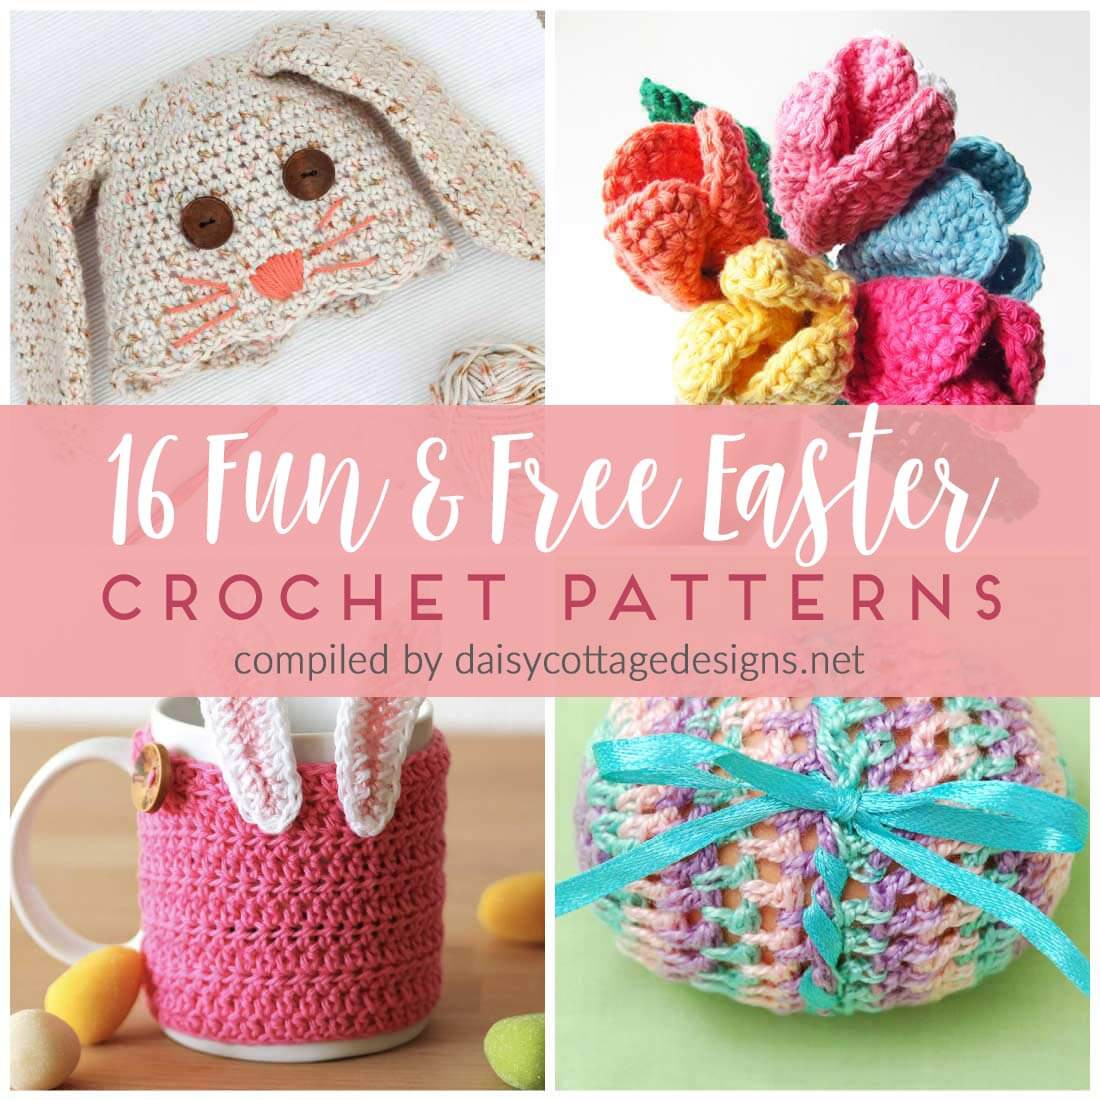 Free Easter Crochet Patterns Luxury 16 Free Crochet Patterns for Easter Daisy Cottage Designs Of Innovative 44 Ideas Free Easter Crochet Patterns